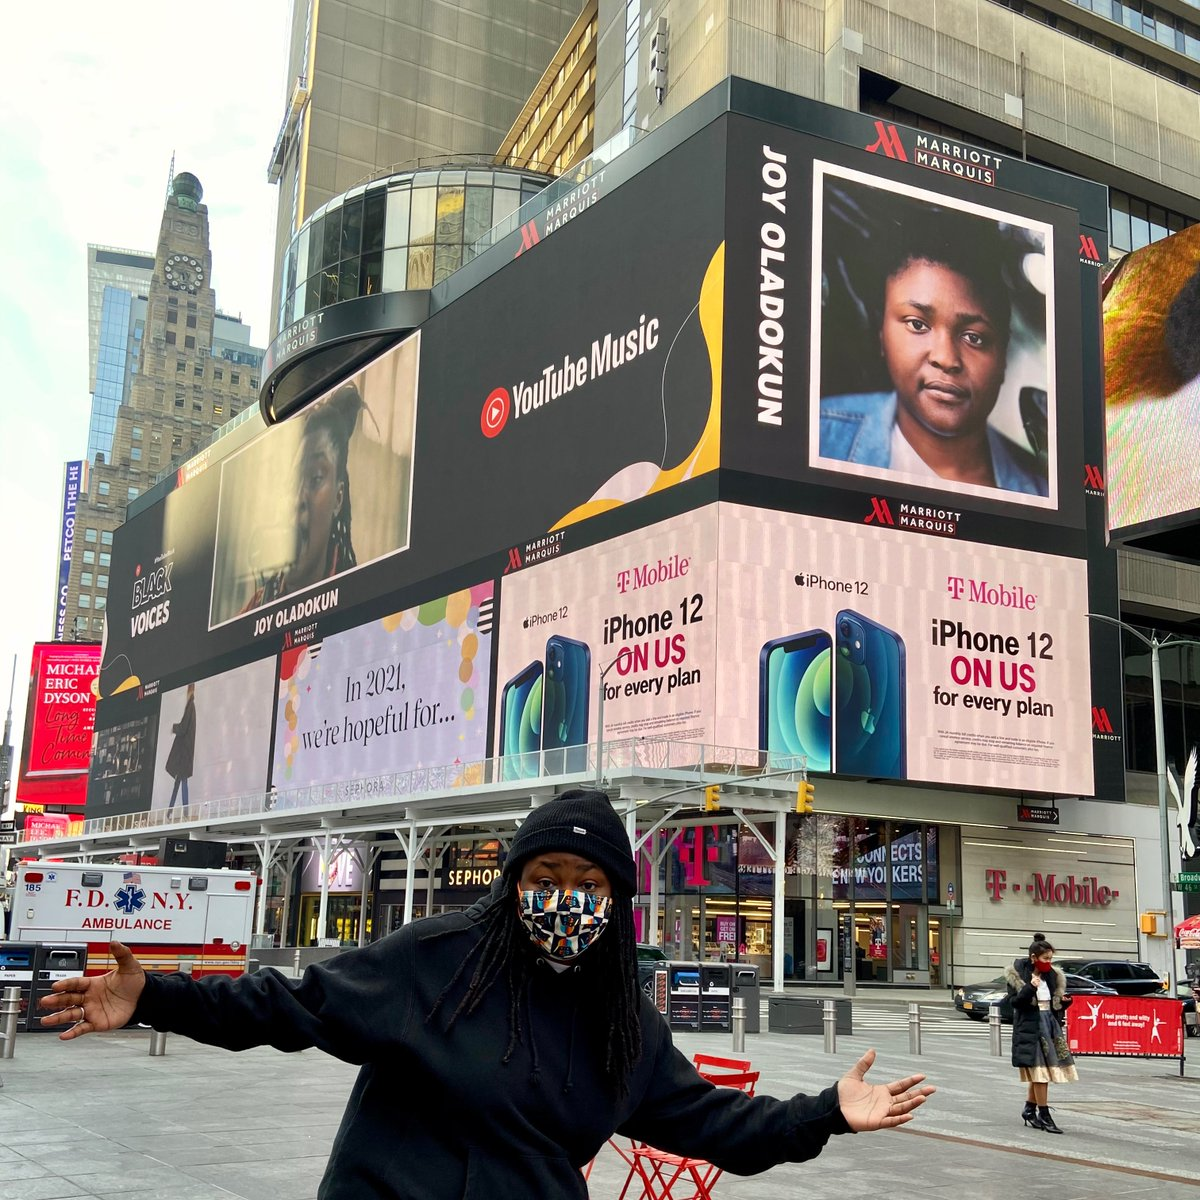 I actually don't have words for what it feels like to see my face in Times Square. thank you @youtubemusic for making this dream come true.